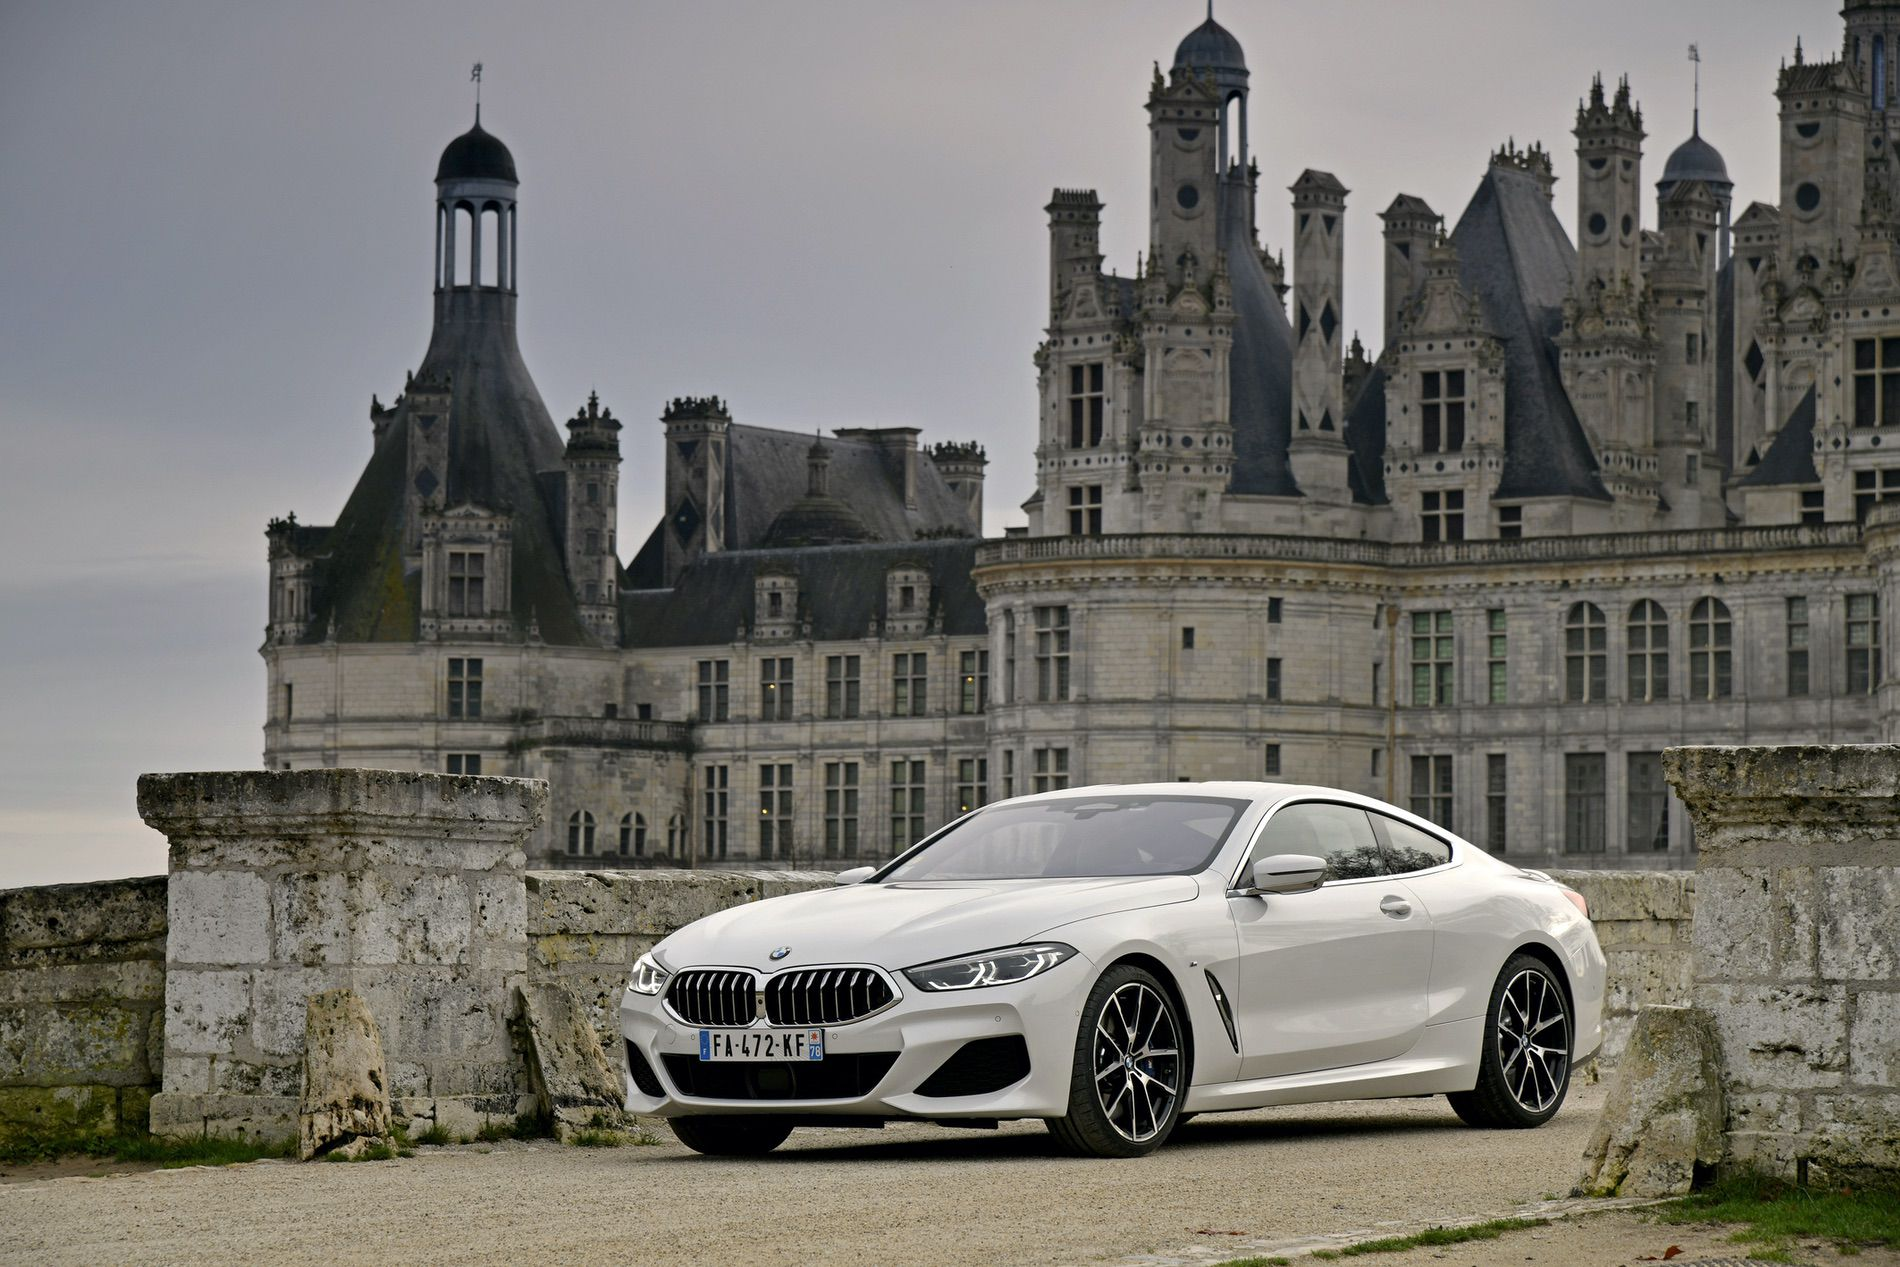 Carwow replaces its long-term Audi RS4 with BMW 8 Series